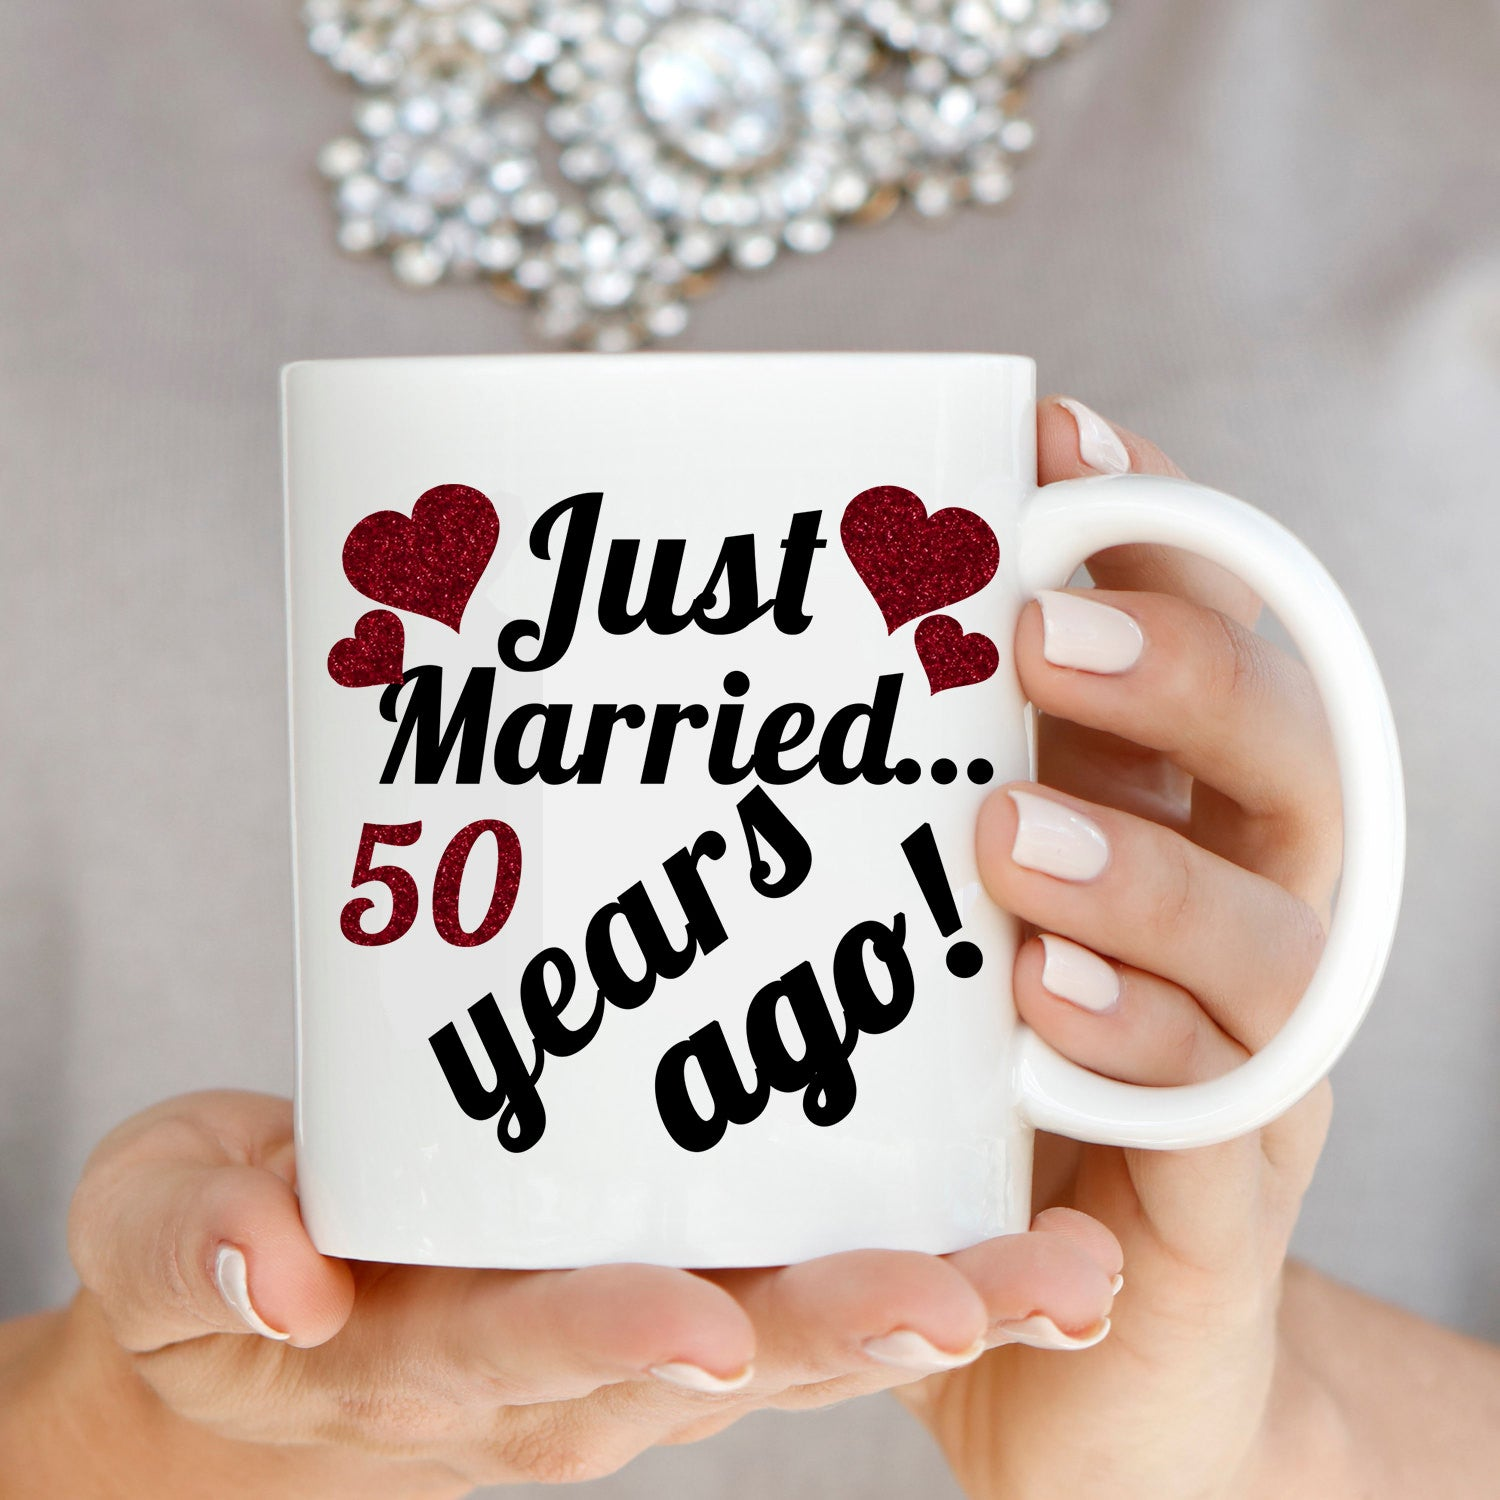 Unique Wedding Anniversary Gifts: Personalized! Wedding Anniversary Gifts For Couples Just